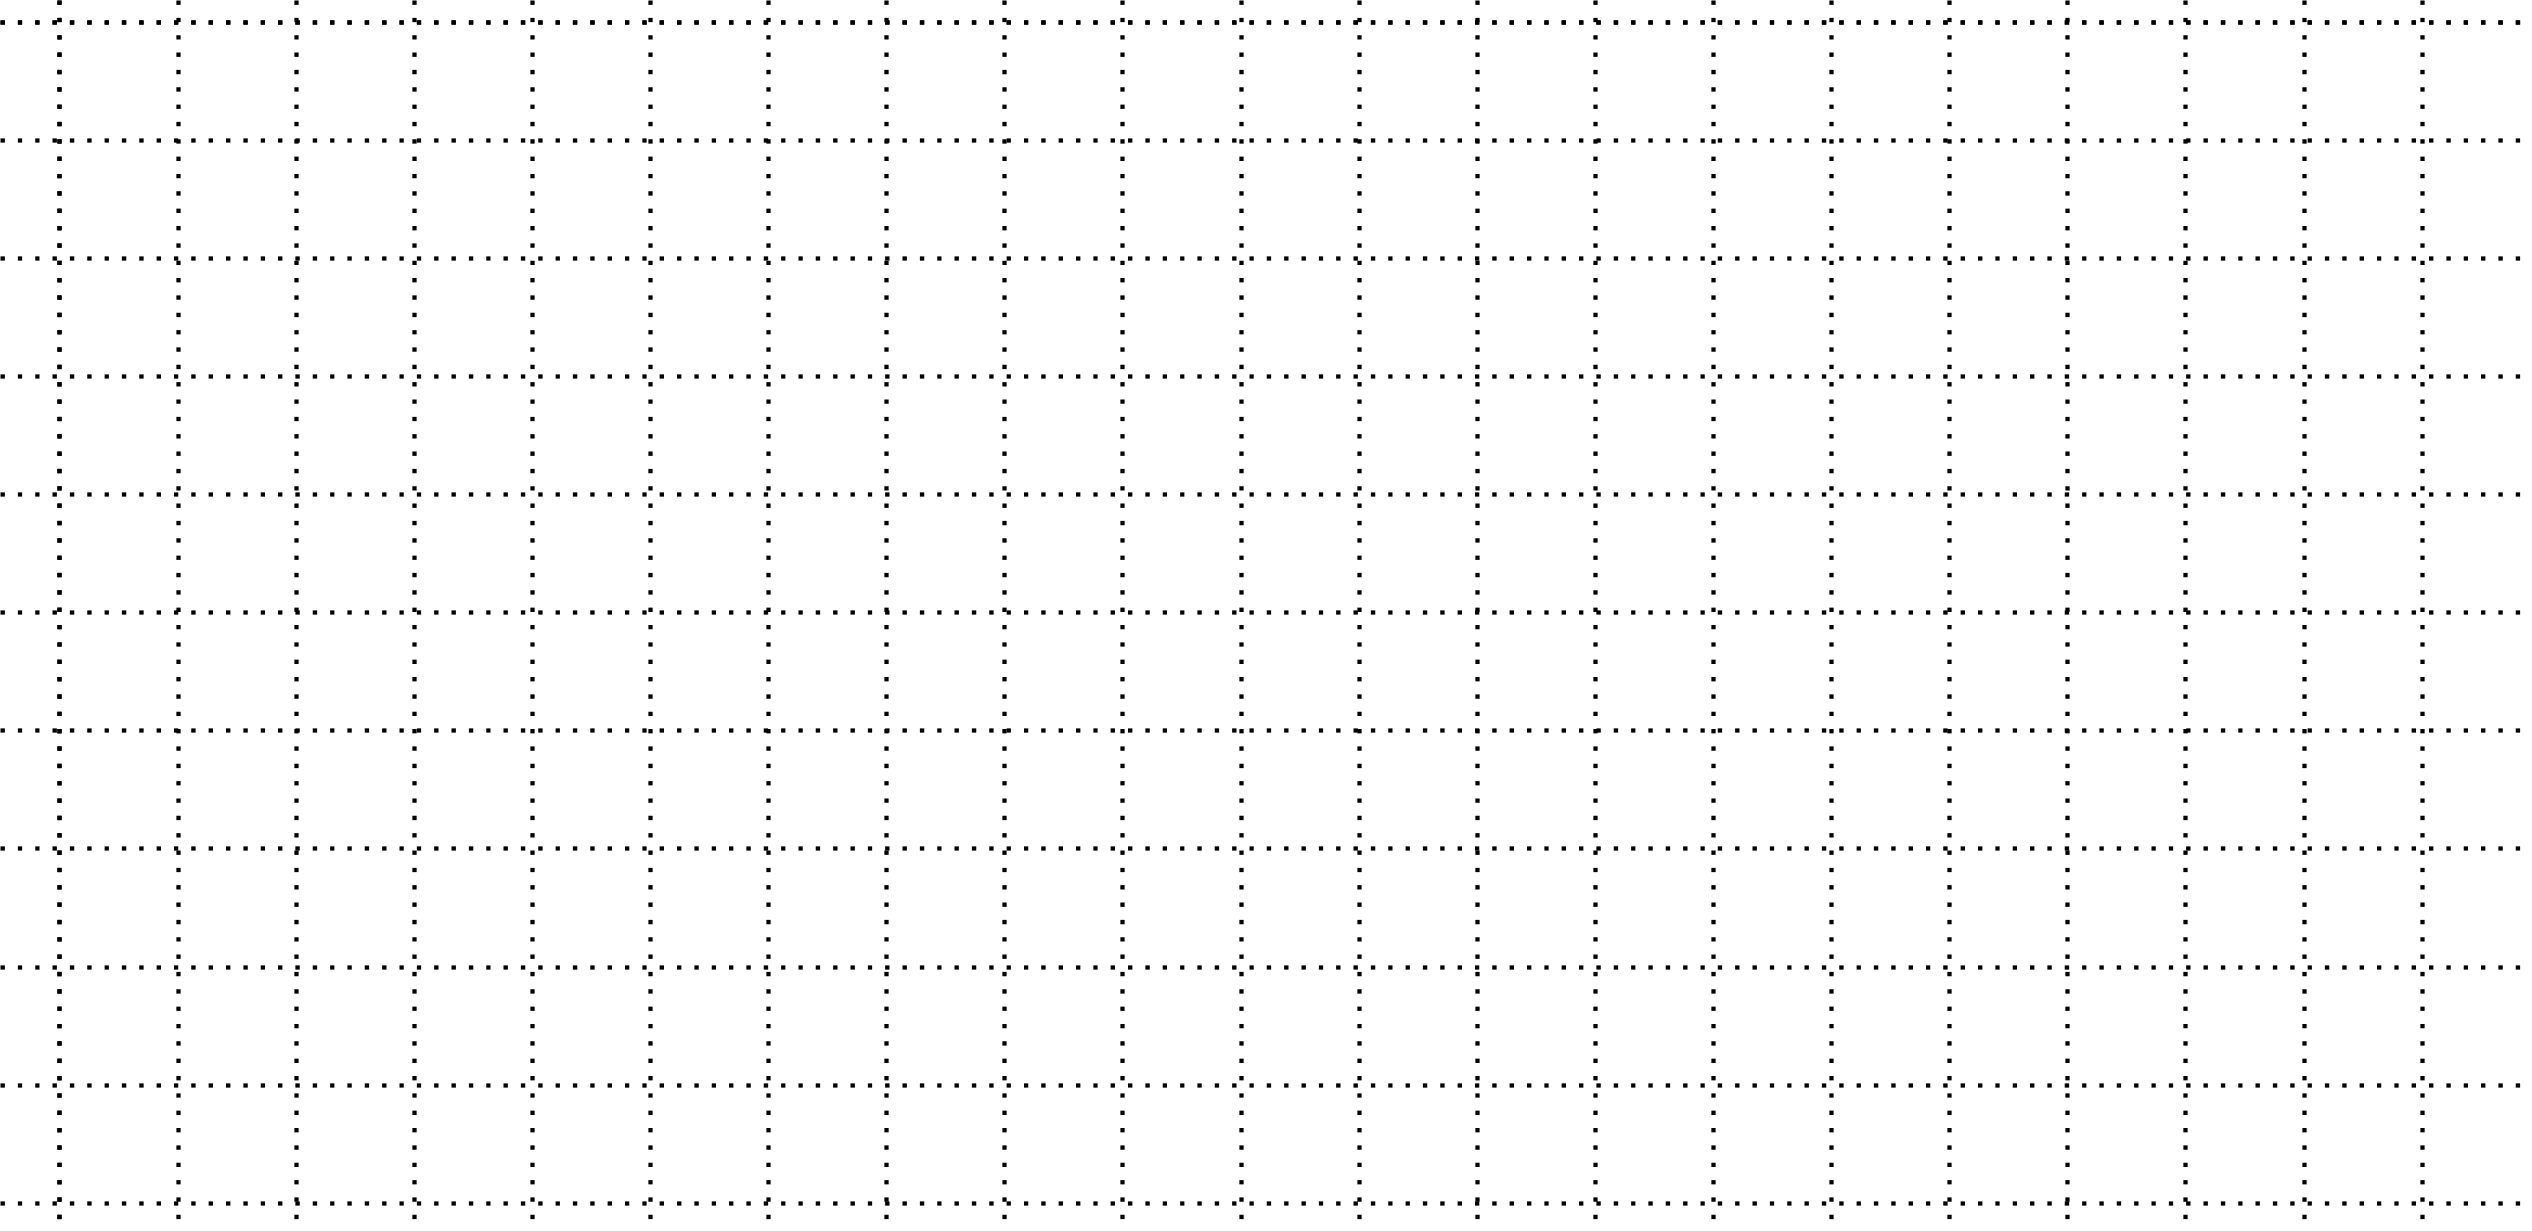 Grids Continuous Reflection